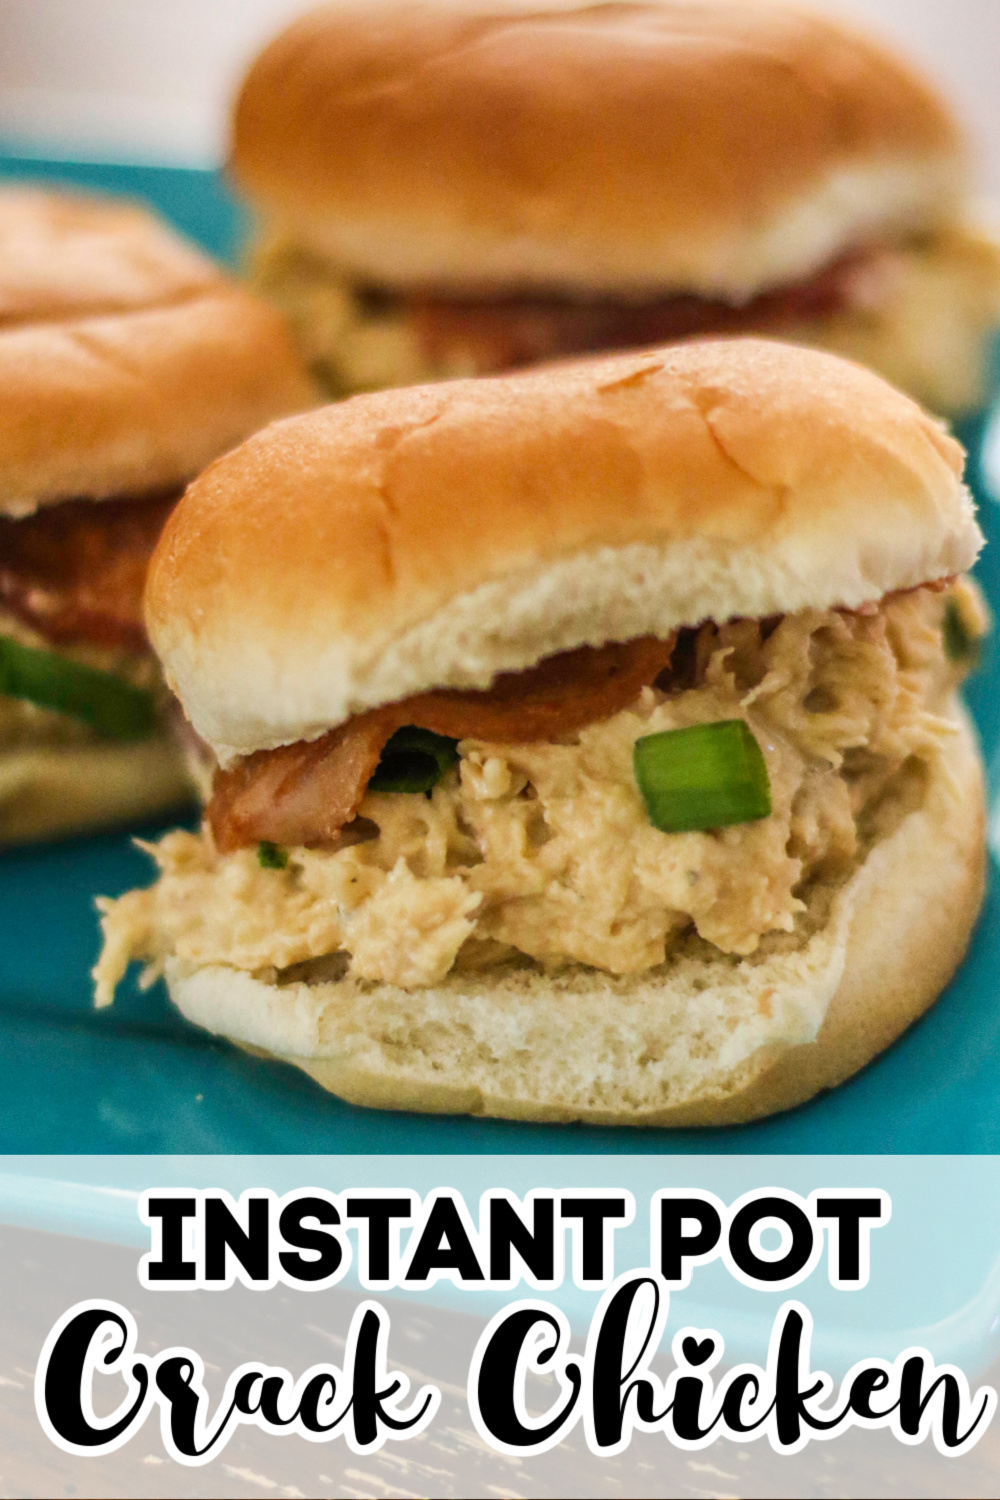 This low carb and Keto friendly Instant Pot Crack Chicken is loaded with chicken, cheese, bacon, and ranch. It's creamy, delicious, and easy to make in the Instant Pot.